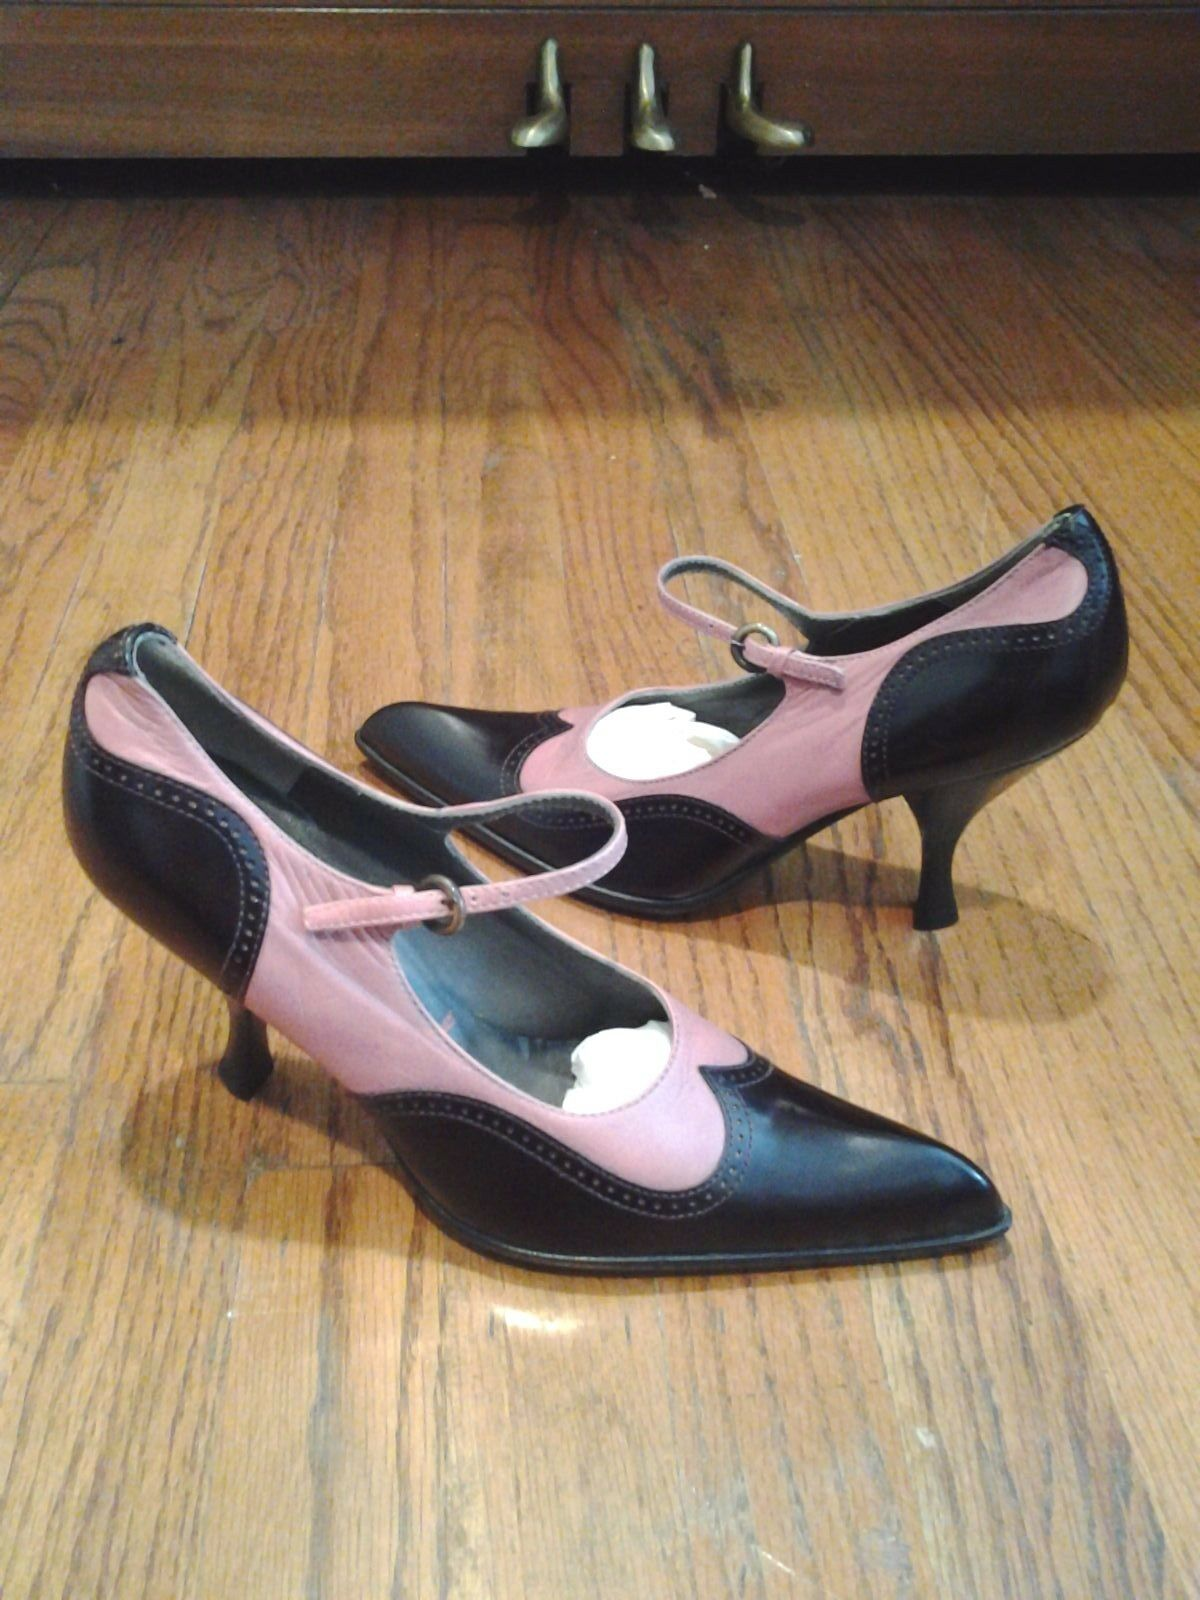 New MIU MIU  Rosa leather high heel ankle strap schuhe 5.5 35 1 2